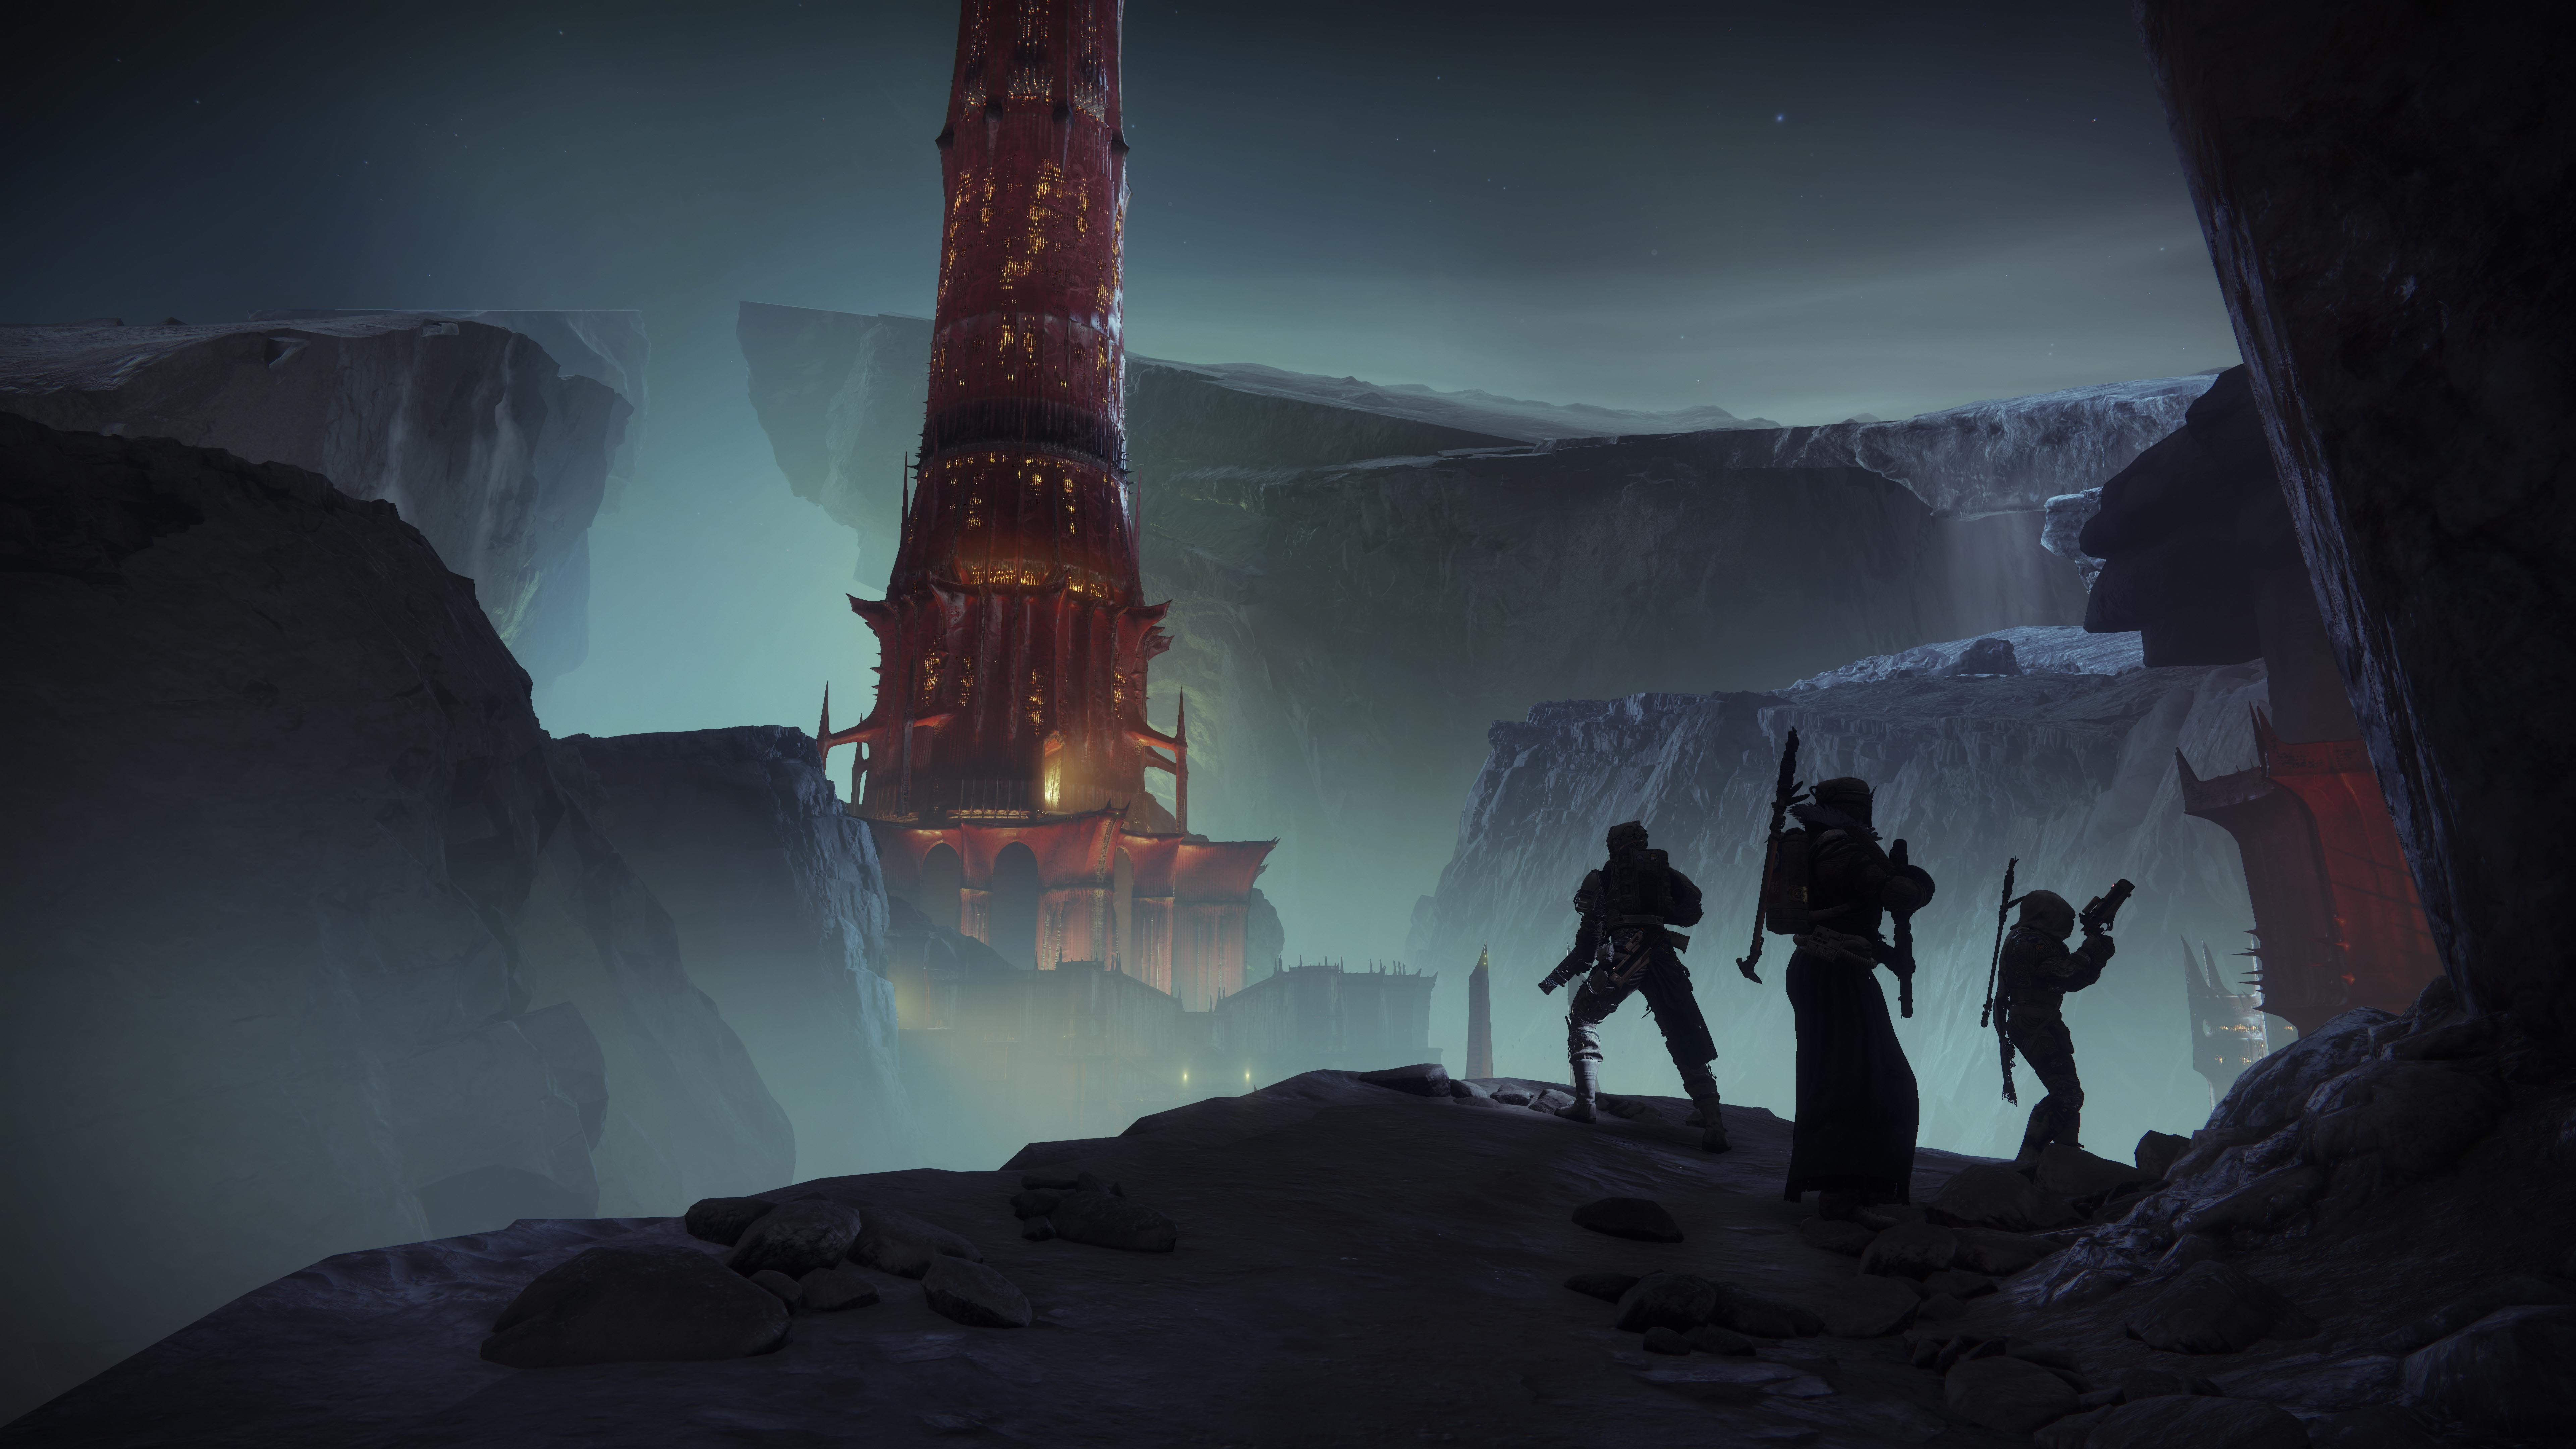 Destiny 2 Wallpaper Desktop Kolpaper Awesome Free Hd Wallpapers